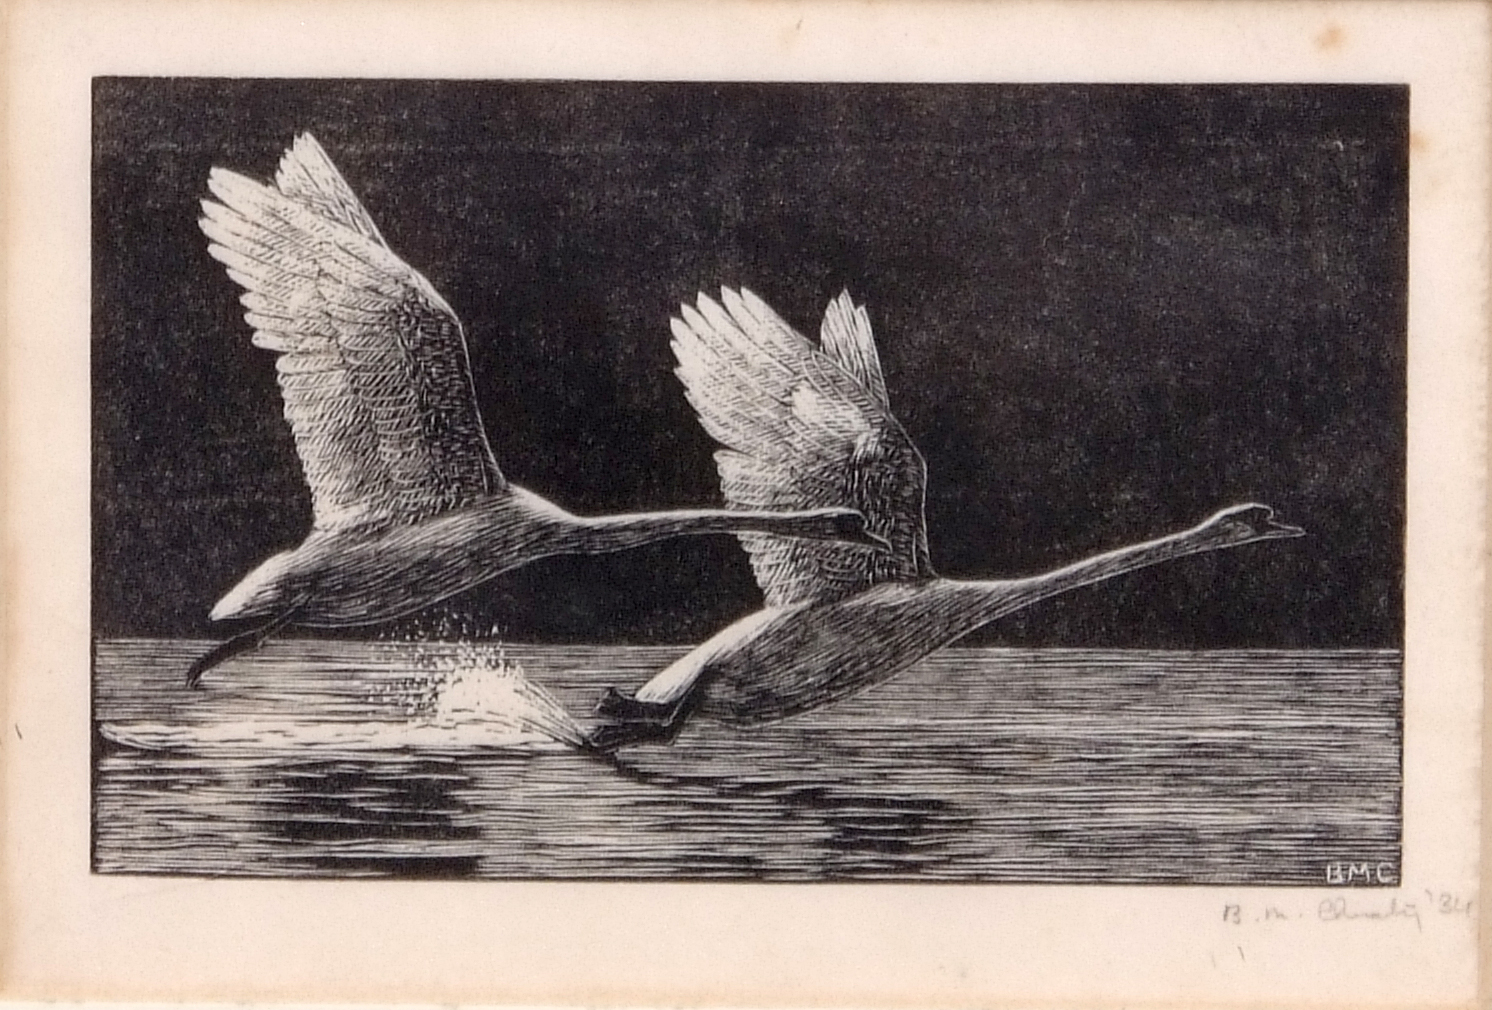 Lot 109 - British School (20th century) Swans alighting black and white woodcut, indistinctly signed and dated